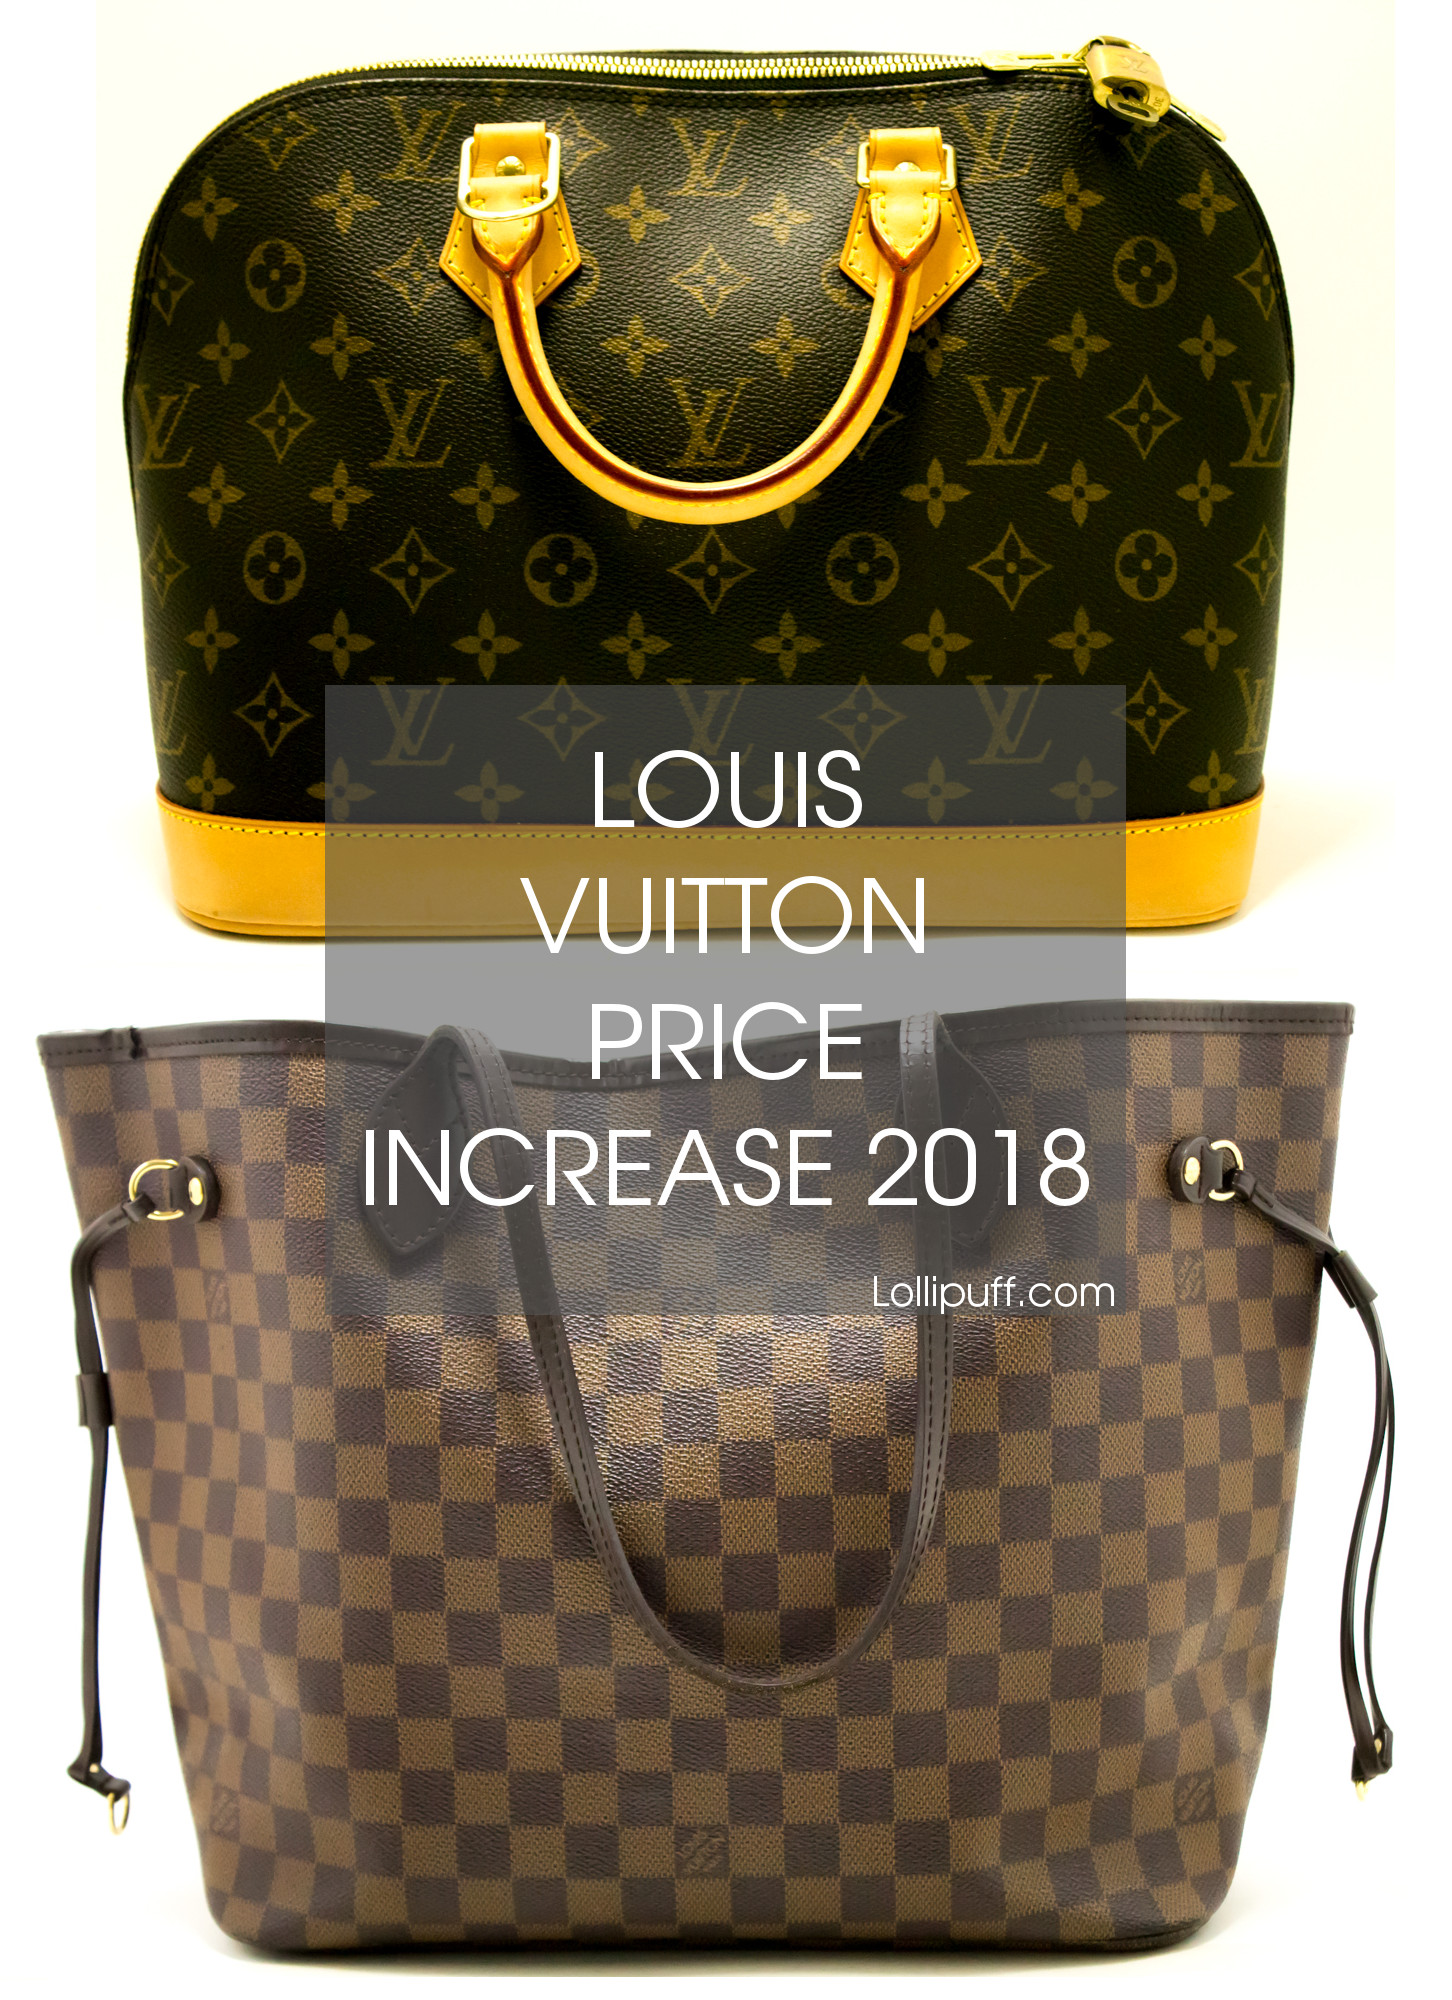 87c14aa5d8f8 Louis Vuitton Handbag Price Increase 2018